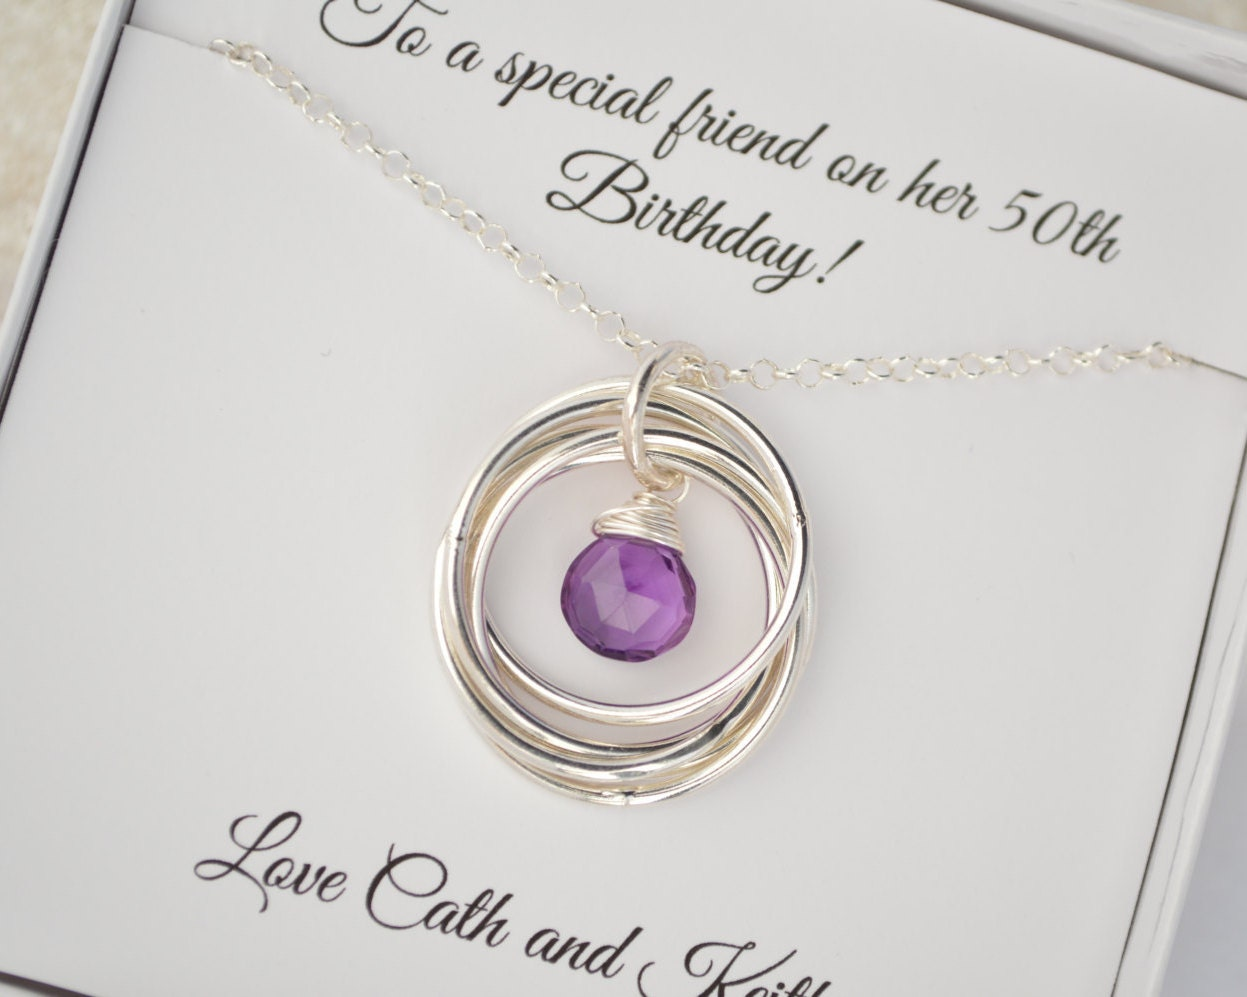 16 Year Wedding Anniversary Gift For Her: 50th Birthday Gift For Women, Gift For Wife, 50th Birthday